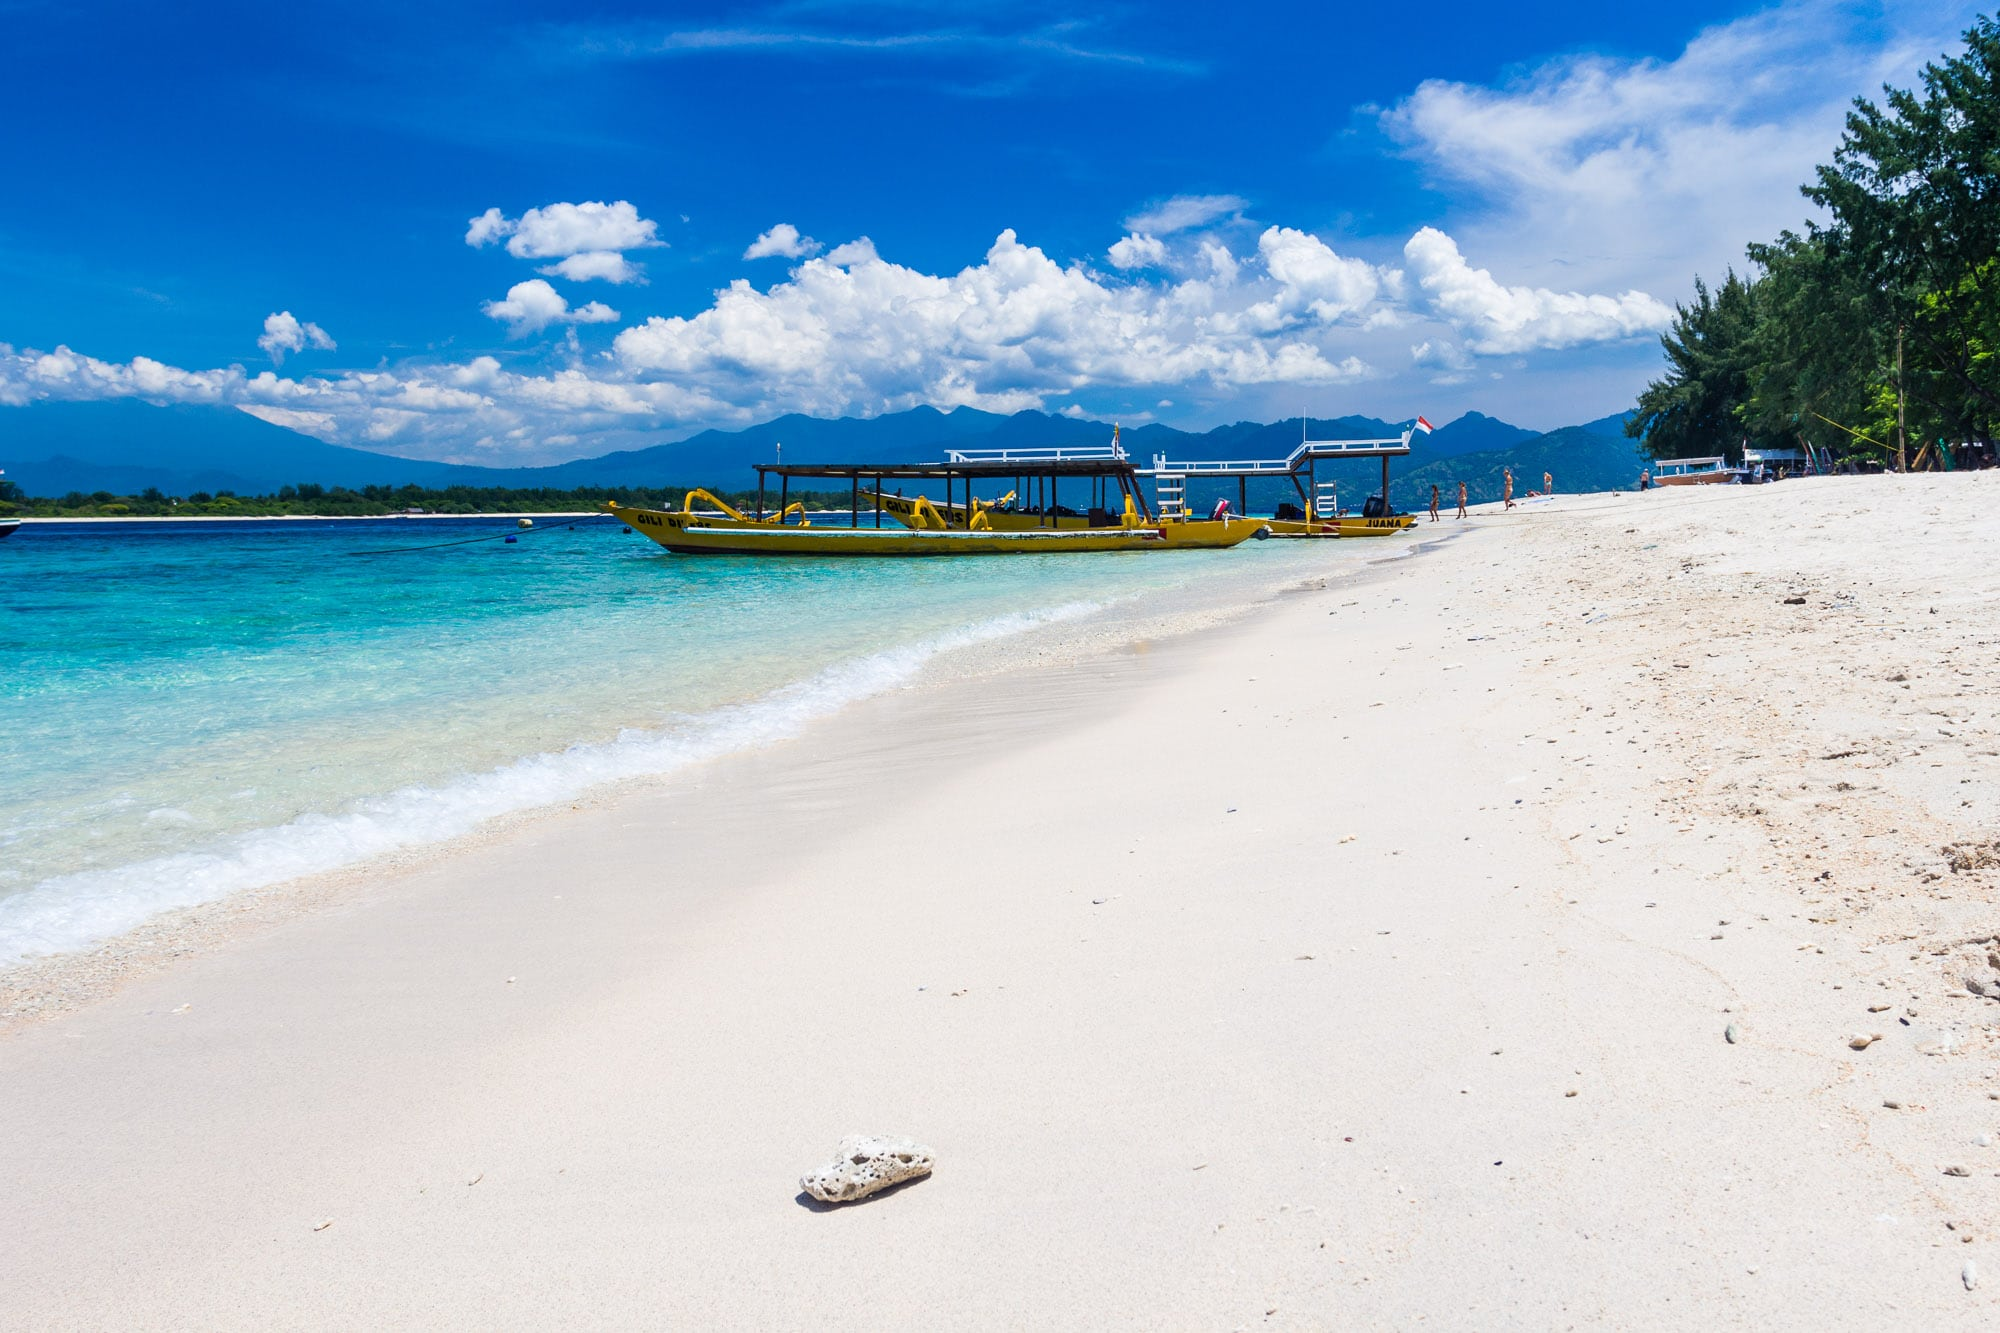 Beach on Gili Trawangan island